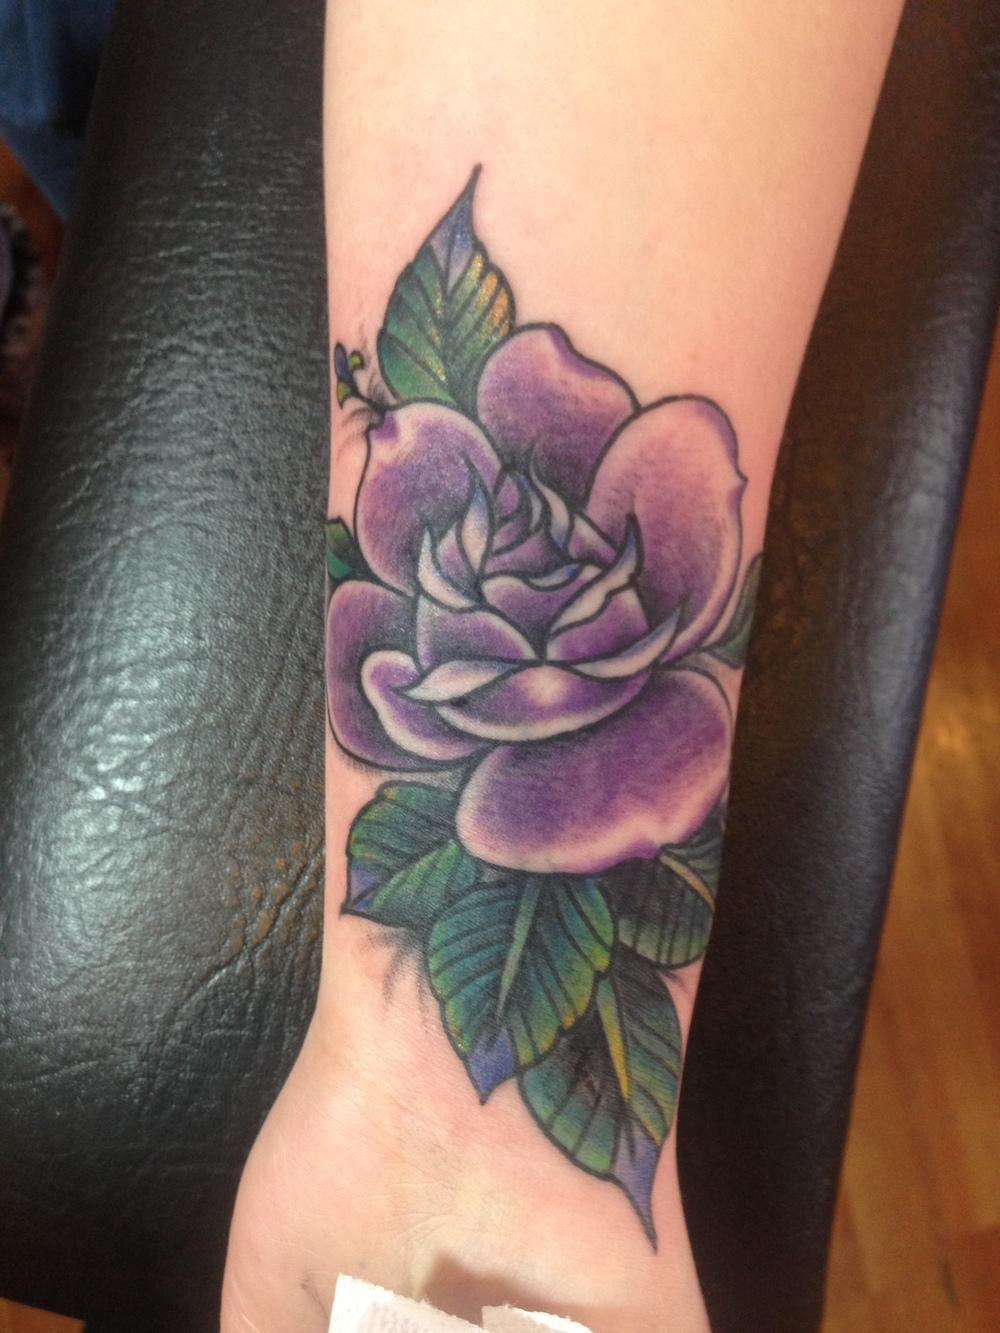 rose-traditionalmatt-lucci-tattoo-design.JPG